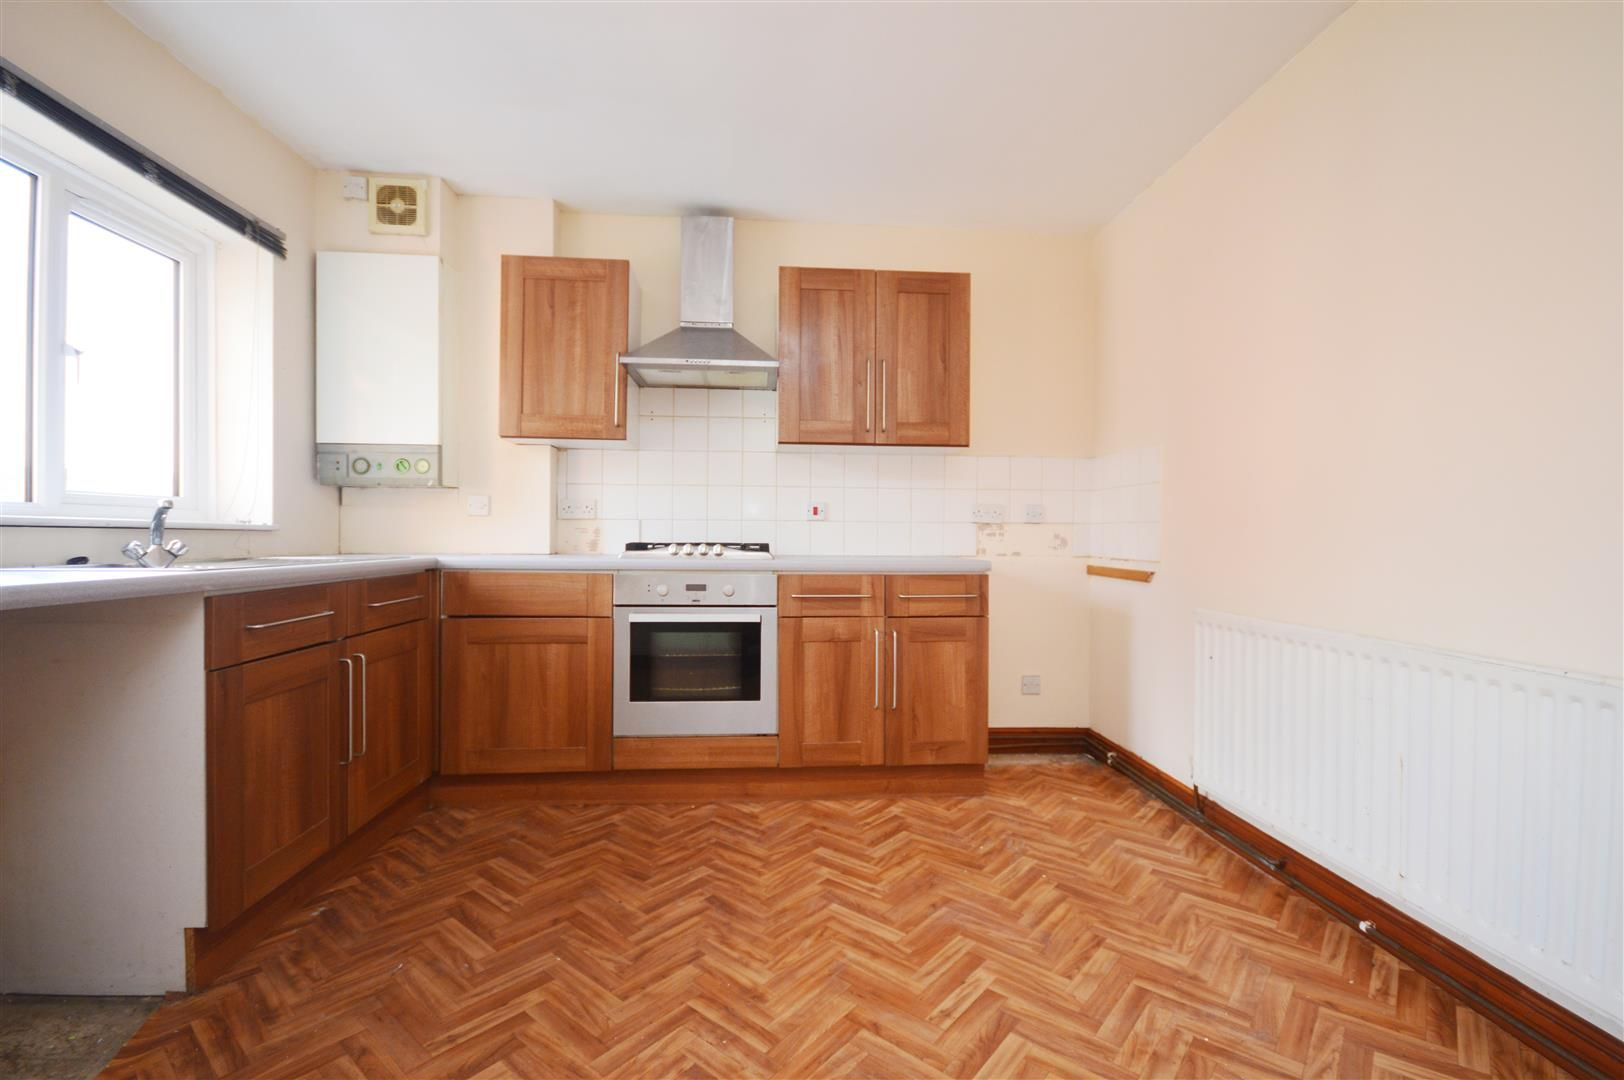 2 bed terraced for sale in Lower Bullingham, HR2